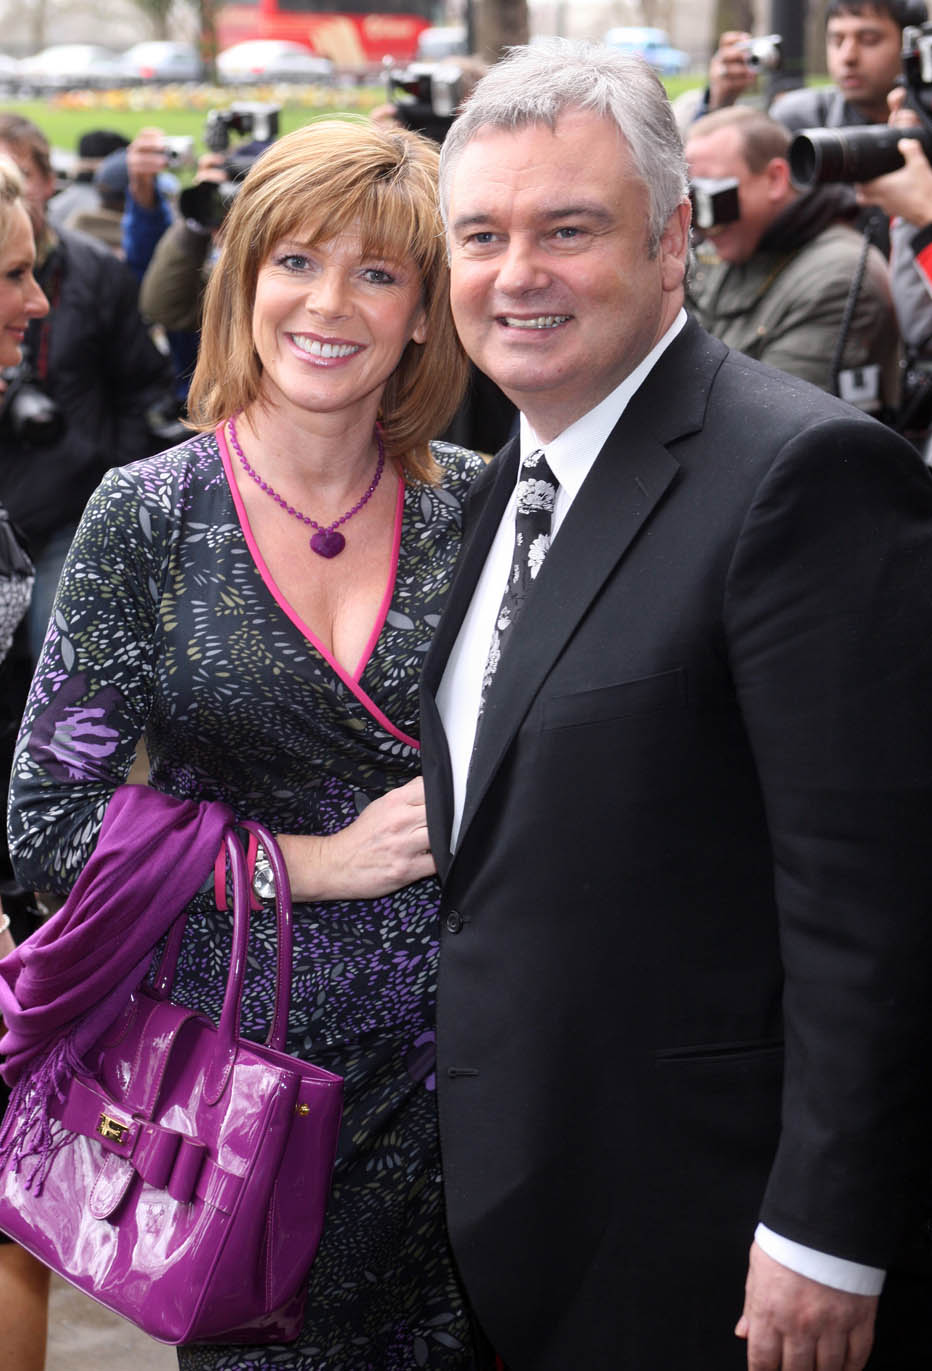 Eamonn and Ruth fear 'This Morning' axe